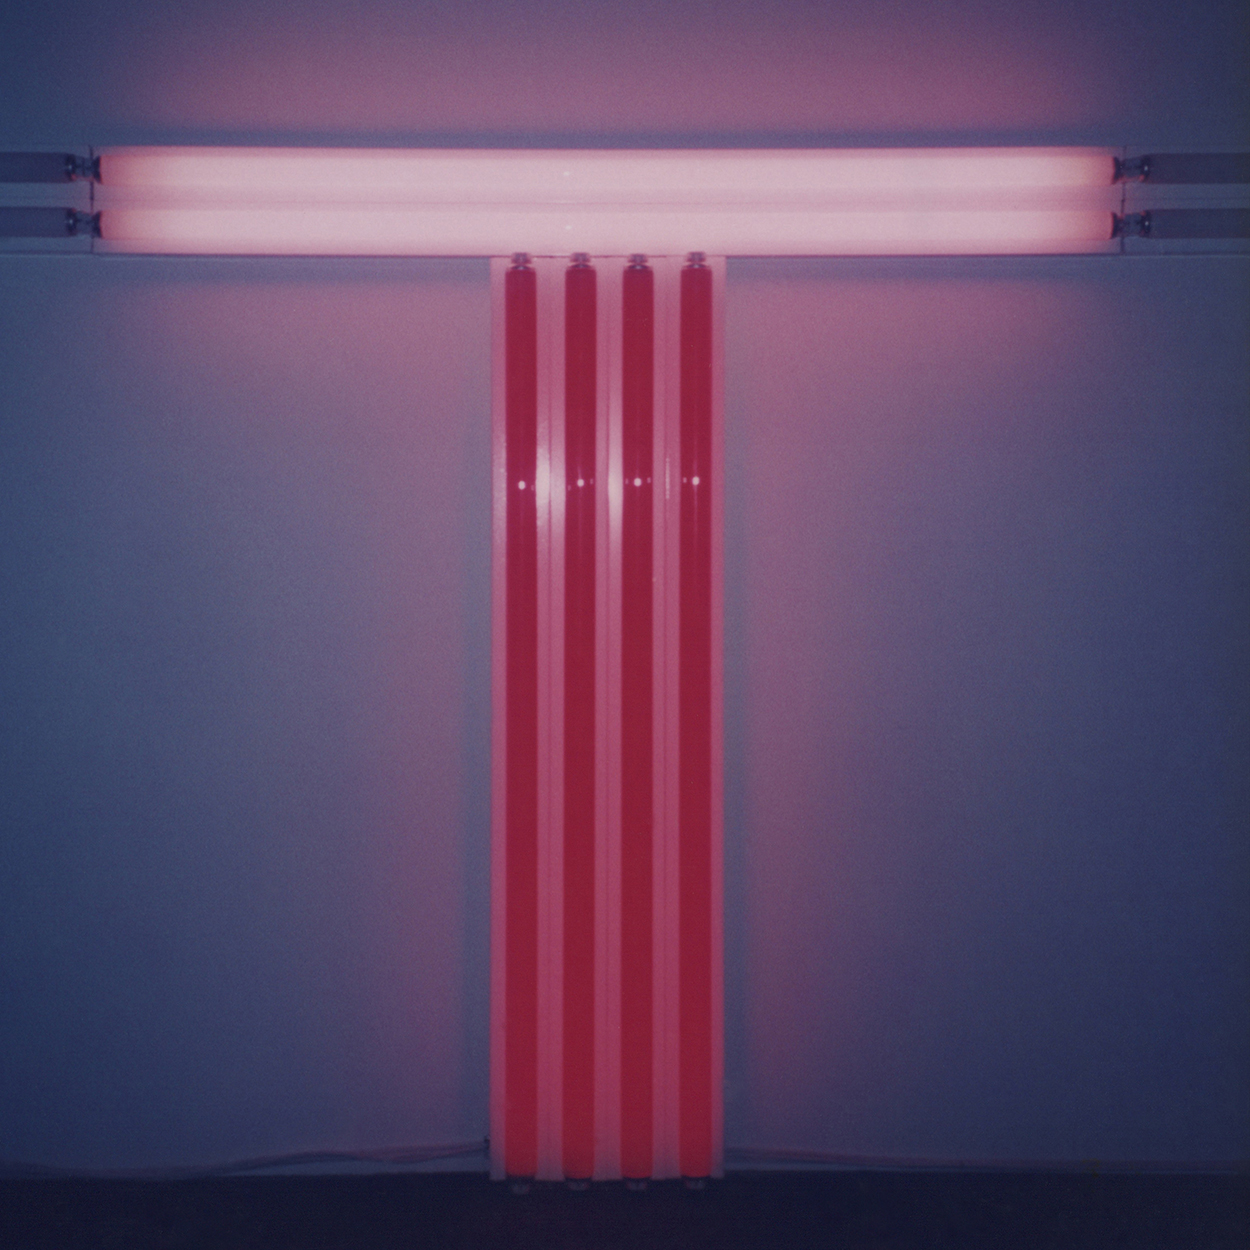 Untitled (To Don Judd, colorist)|red and pink fluorescent lights|137 x 122 x 10 cm|1987